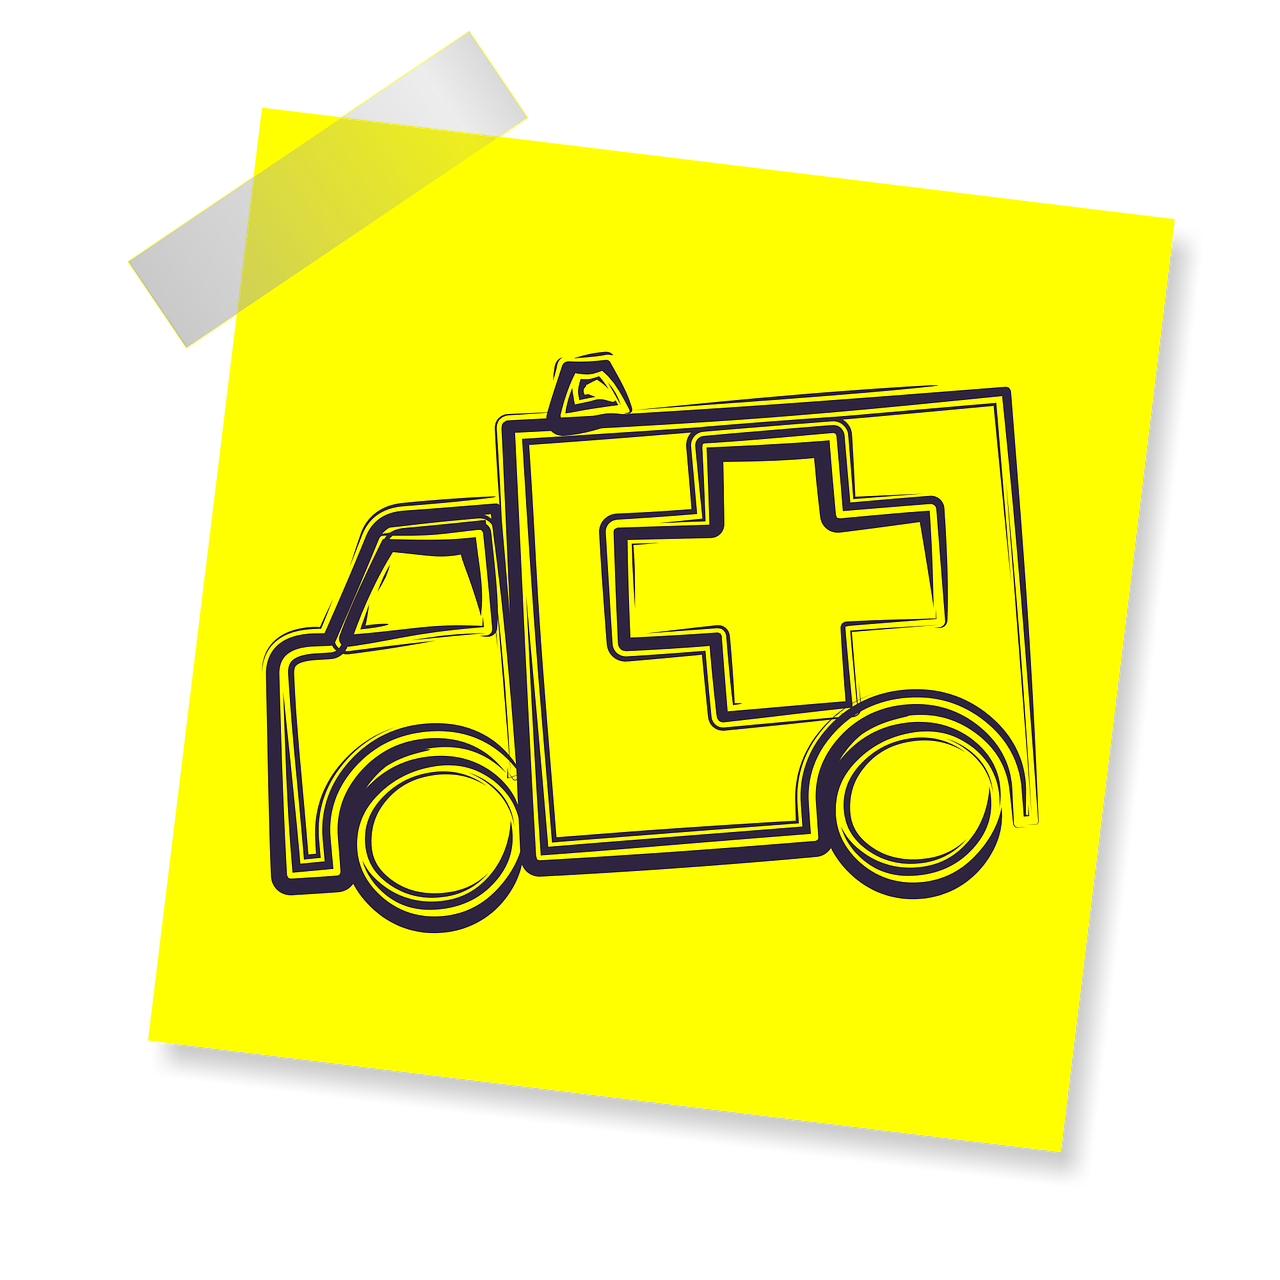 Injury clipart personal accident. And accidents cbt therapy